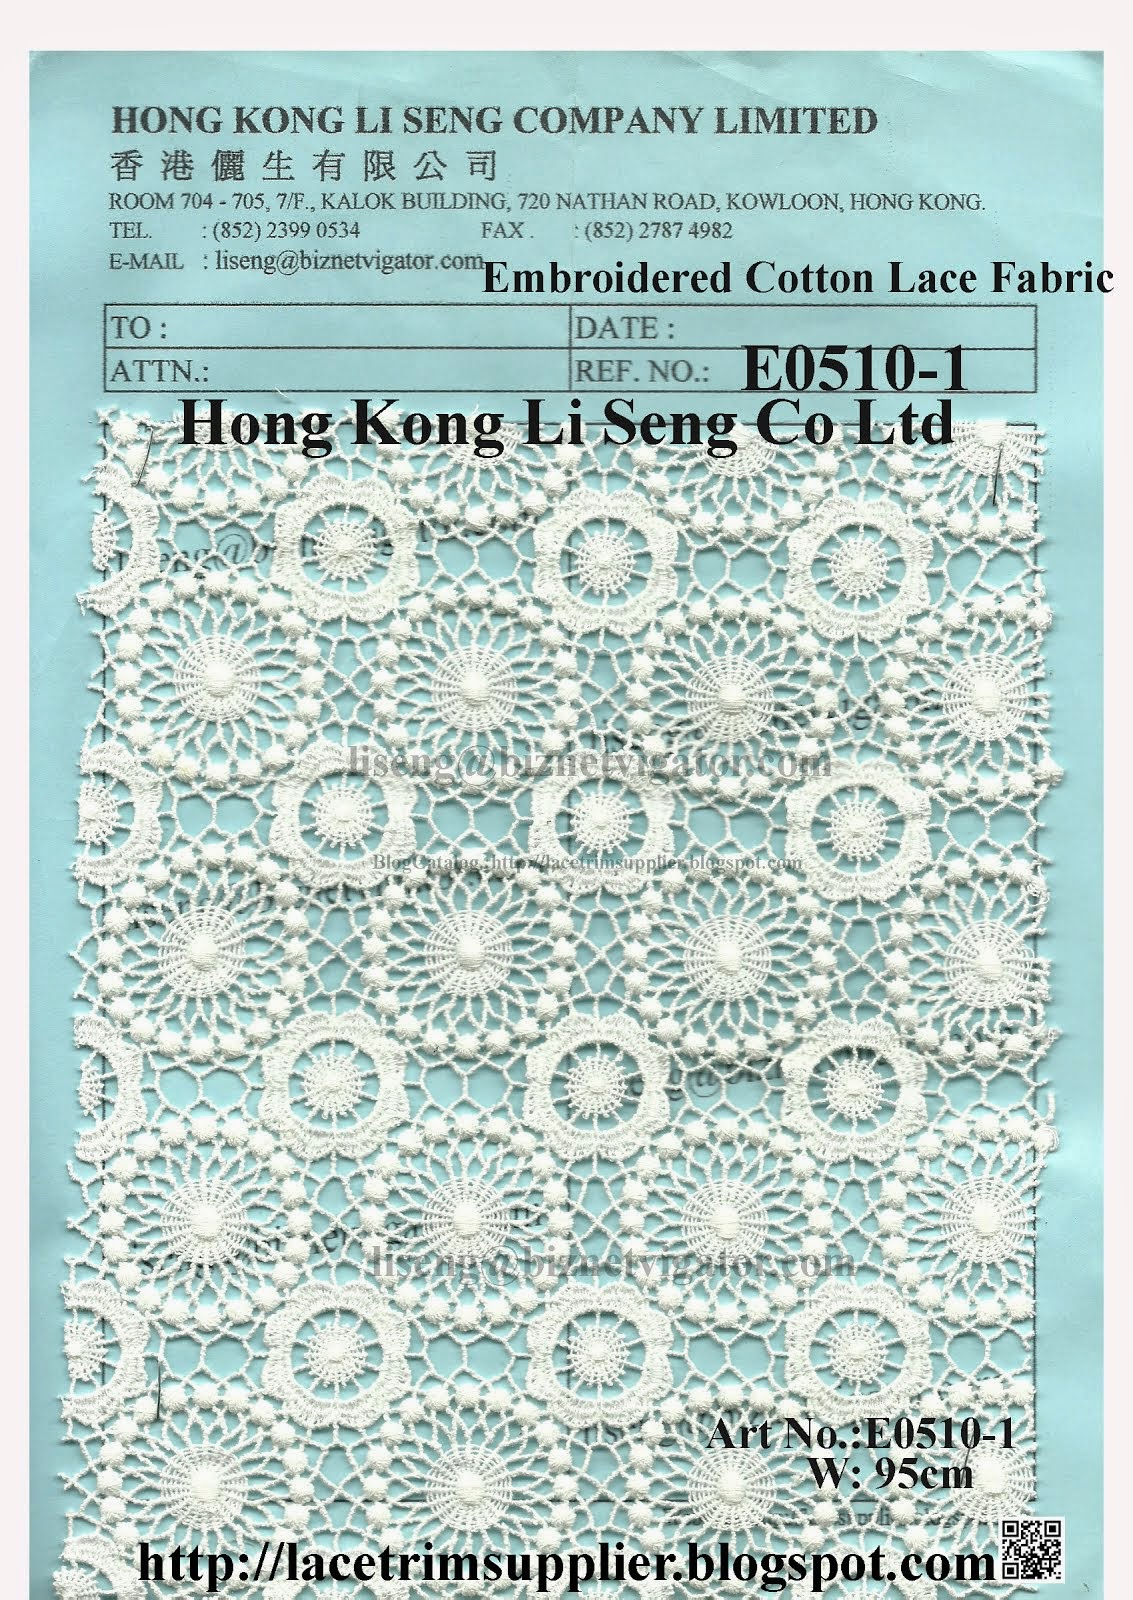 2014 New Lace Fabric Pattern Shown On - Hong Kong Li Seng Co Ltd